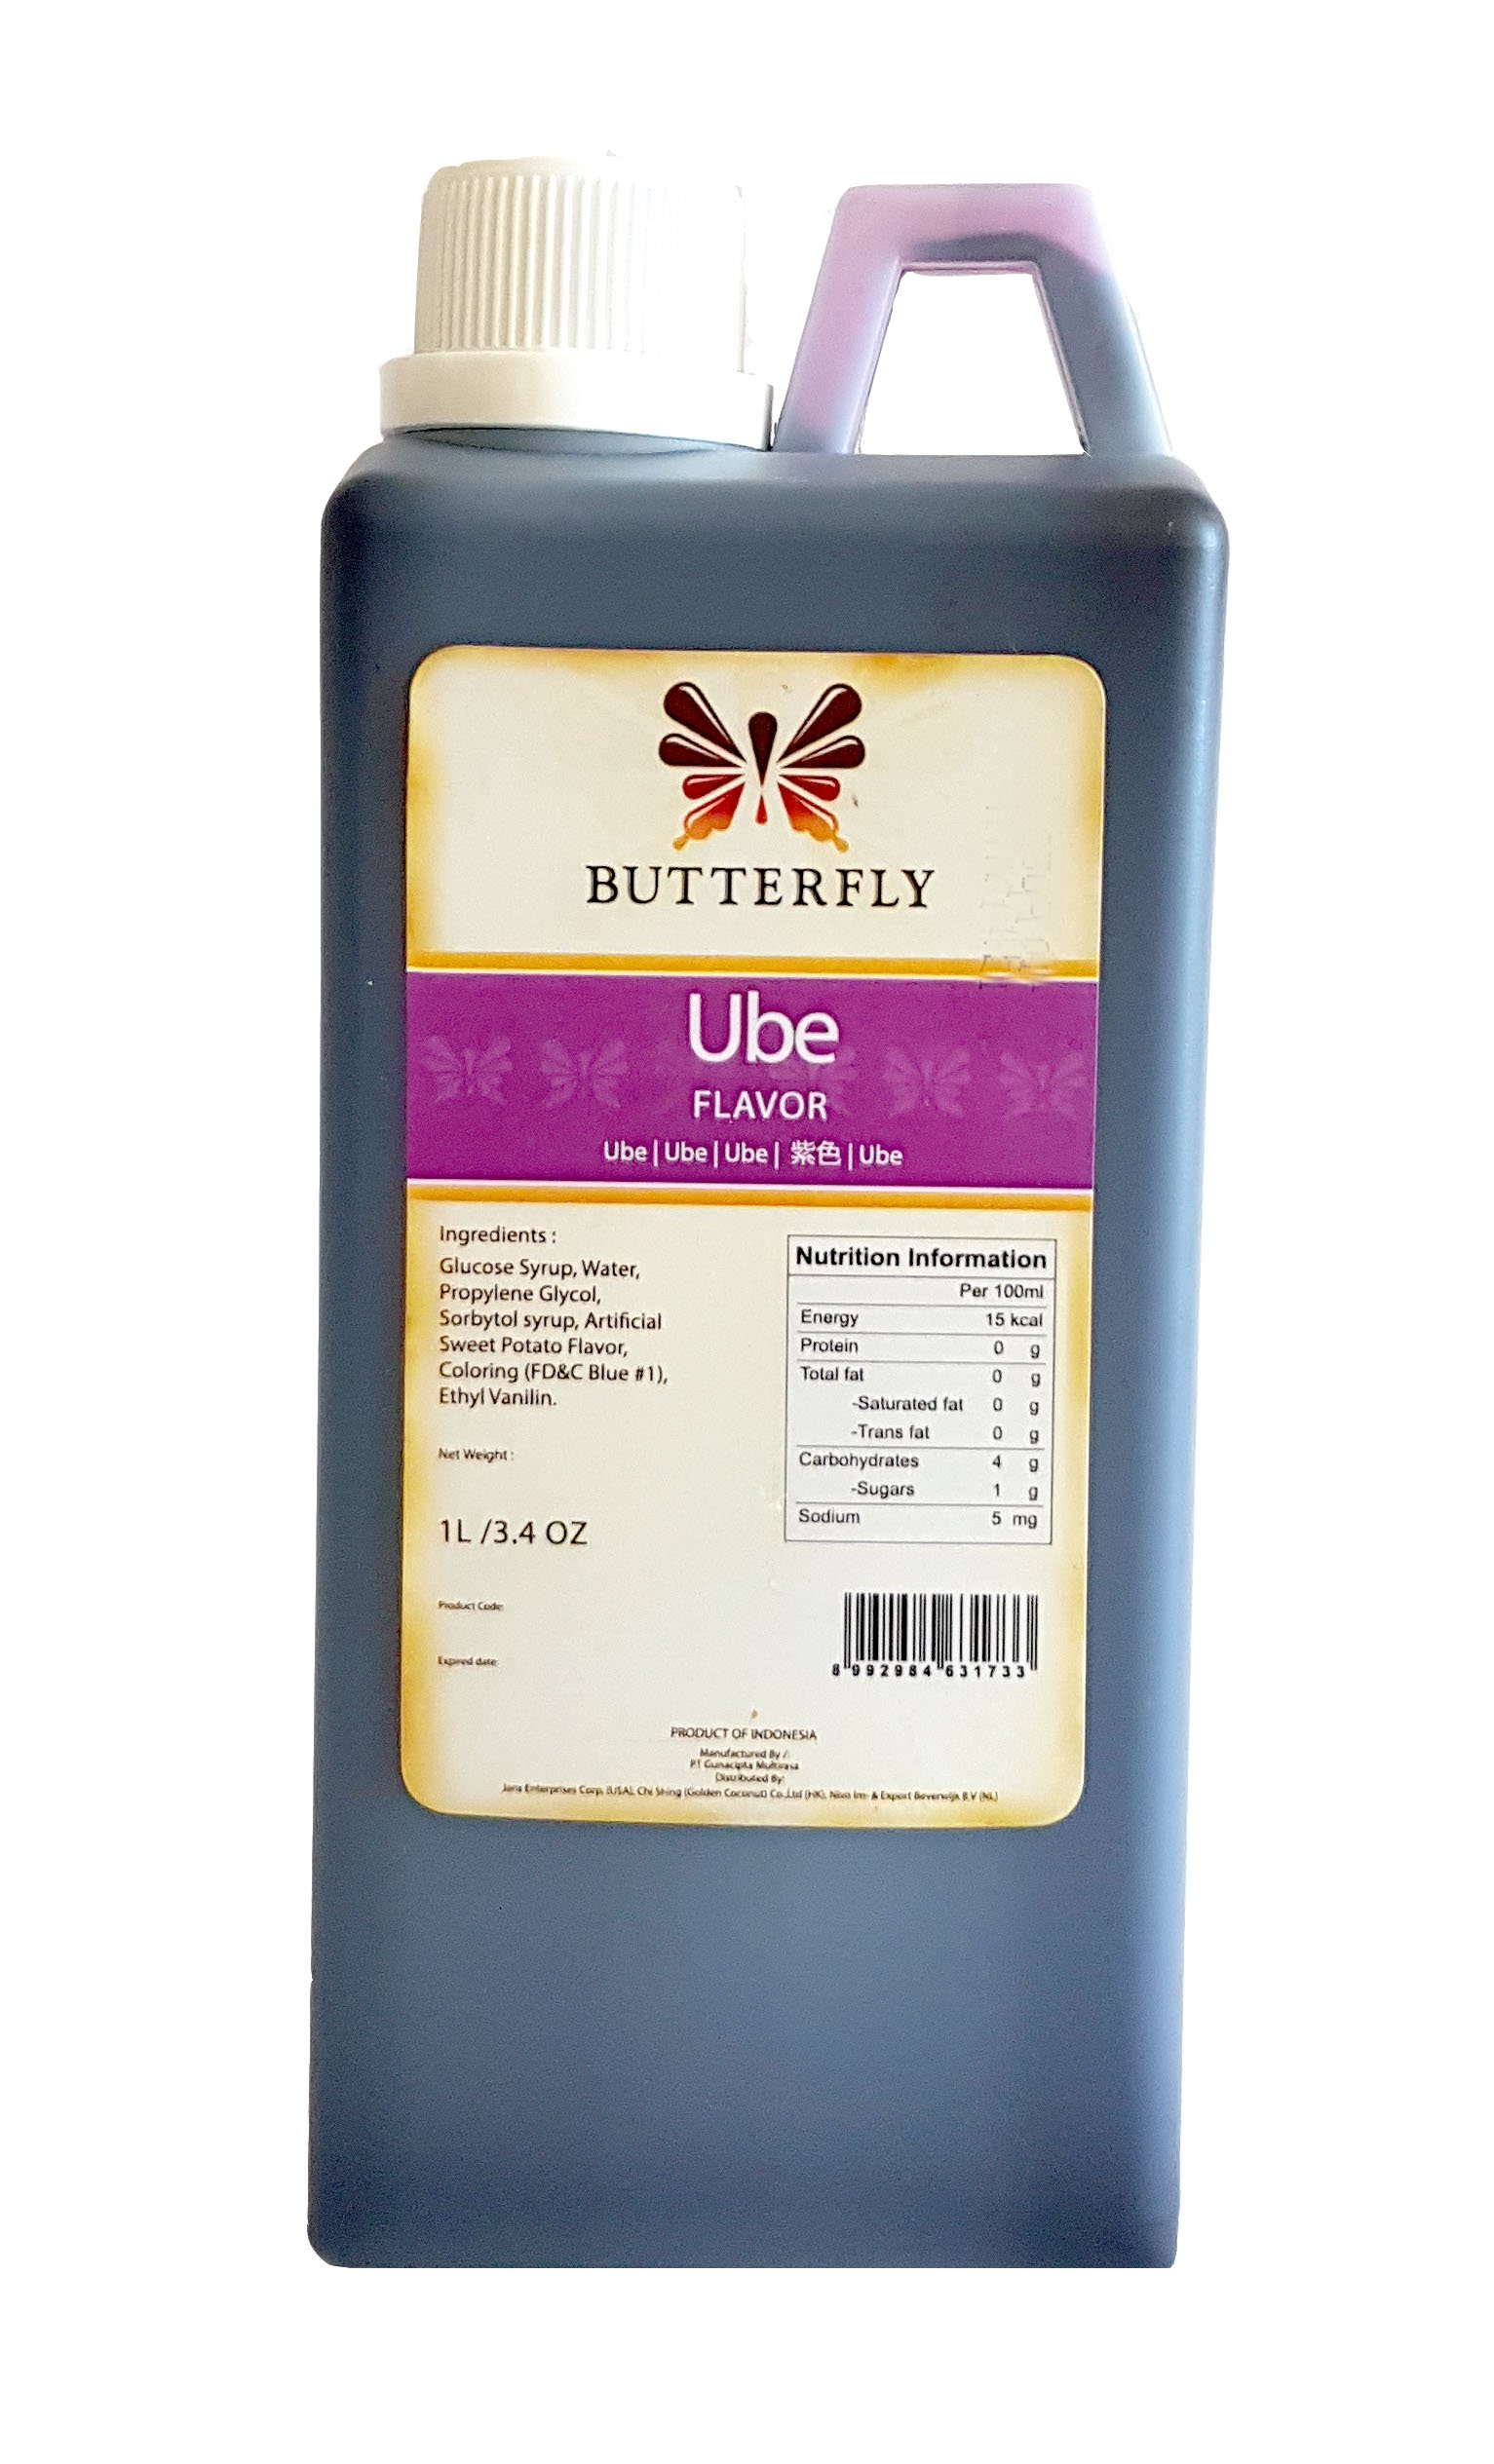 Ube Purple Yam Flavoring Extract Restaurant Size by Butterfly 1 Liter, 33.8 Ounce by Ube Butterfly (Image #2)